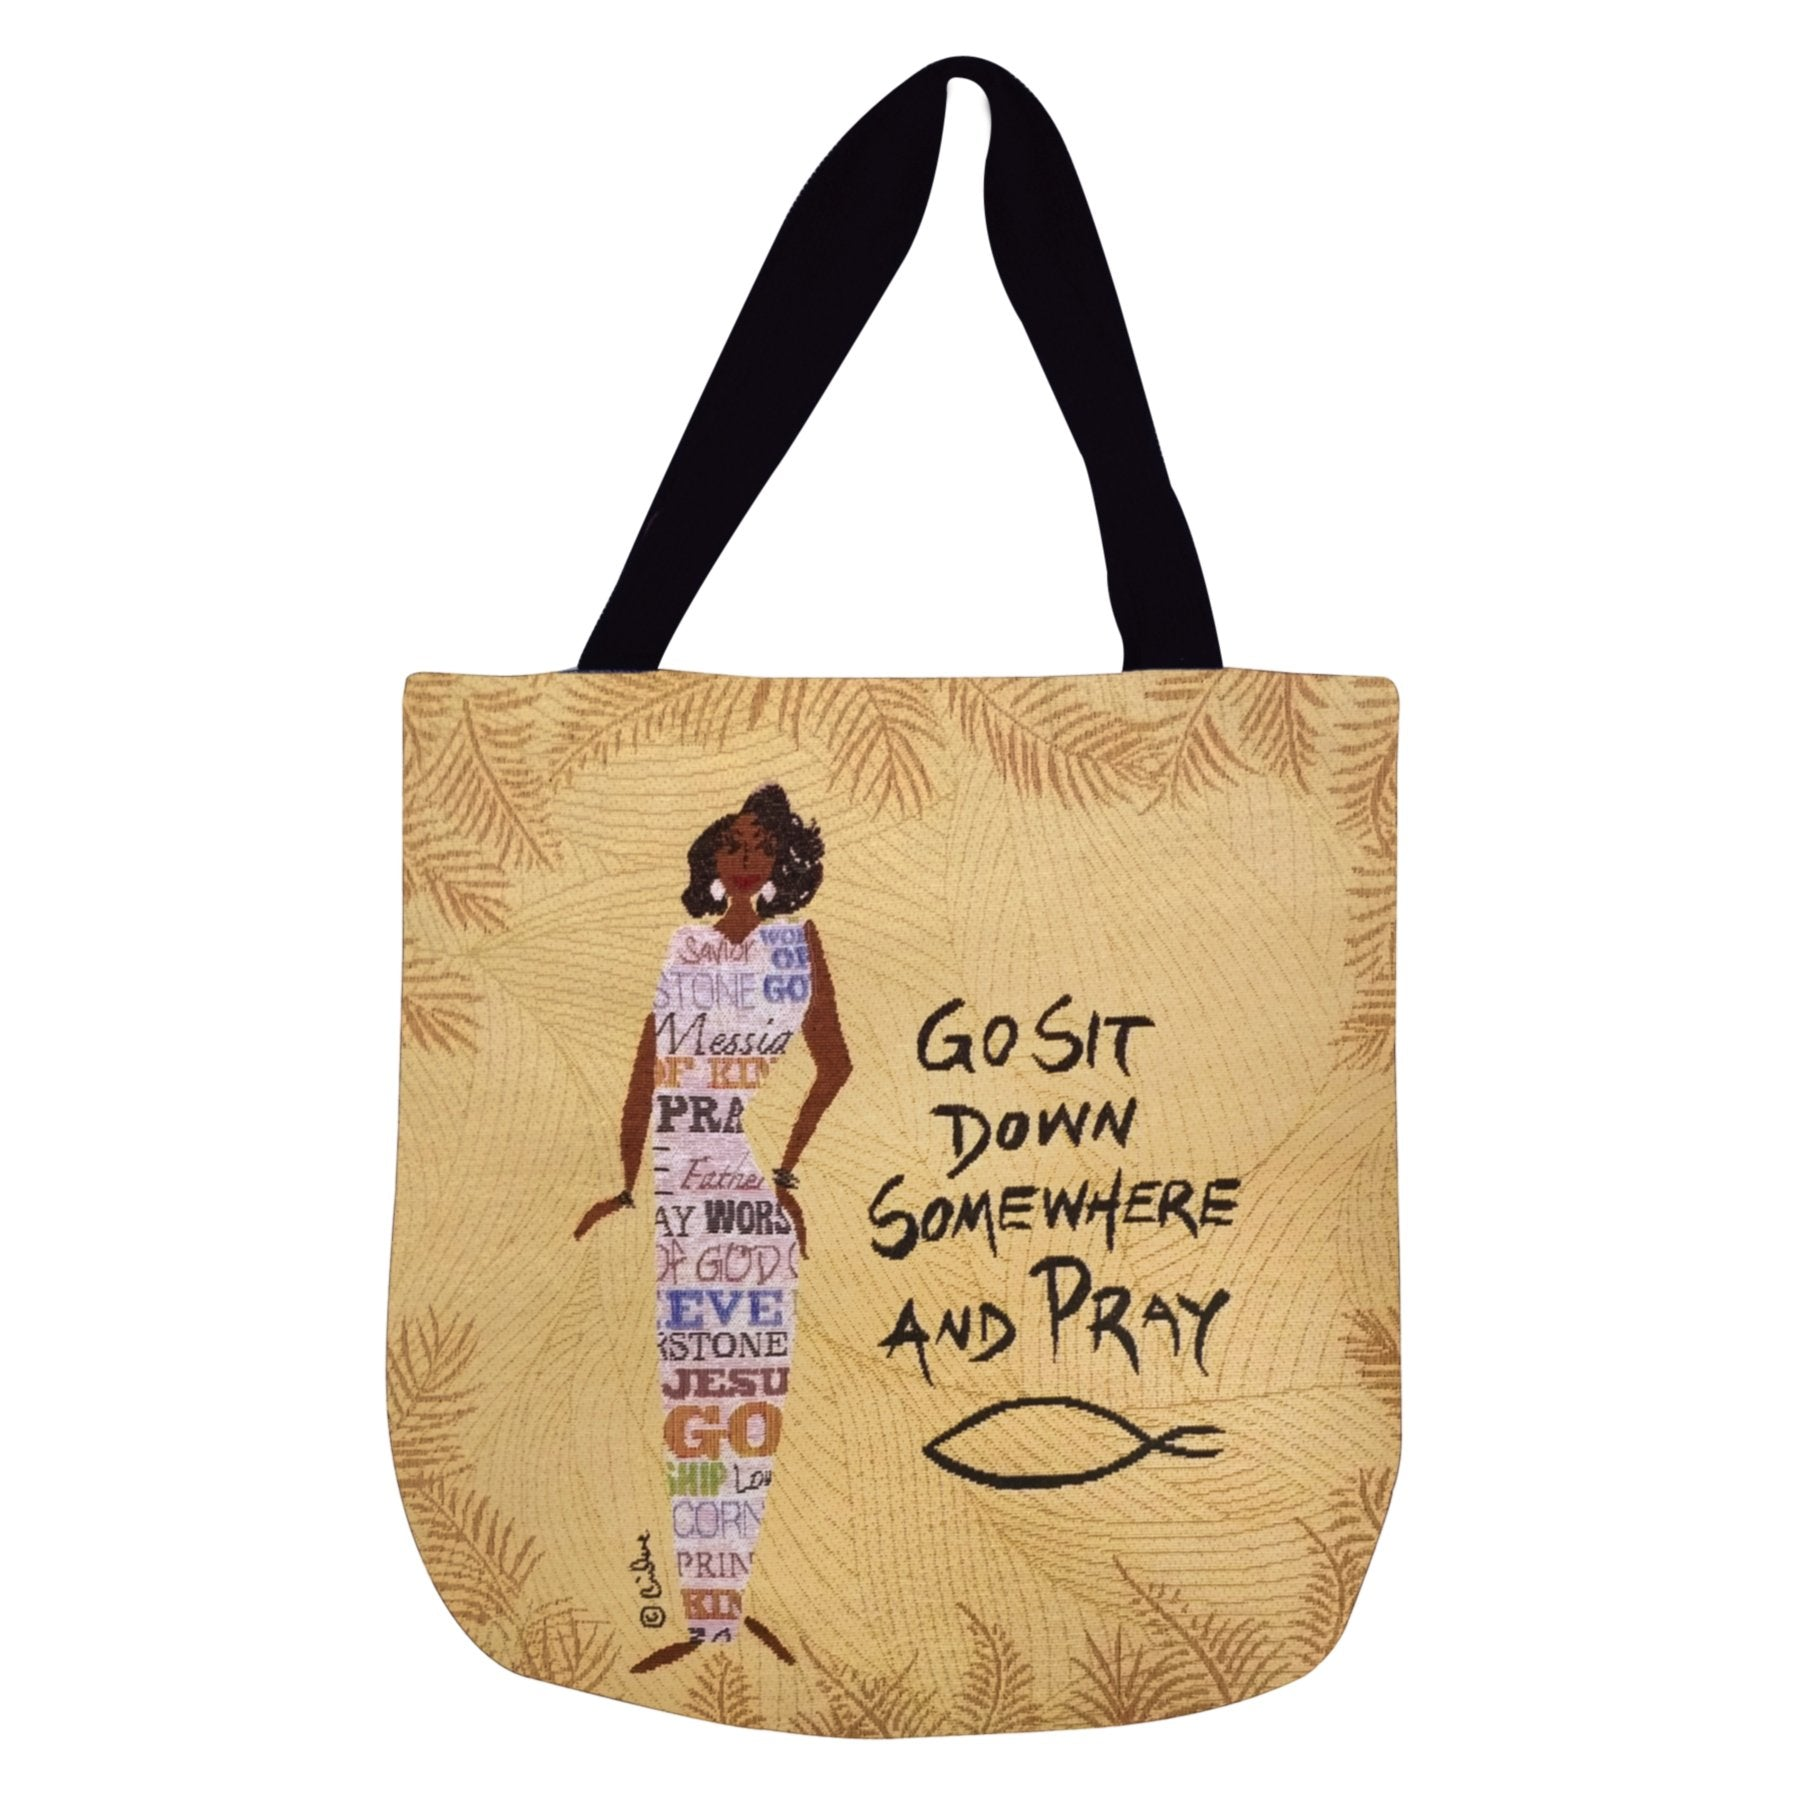 Go Sit Down Somewhere and Pray: African American Woven Tote Bag by Cidne Wallace